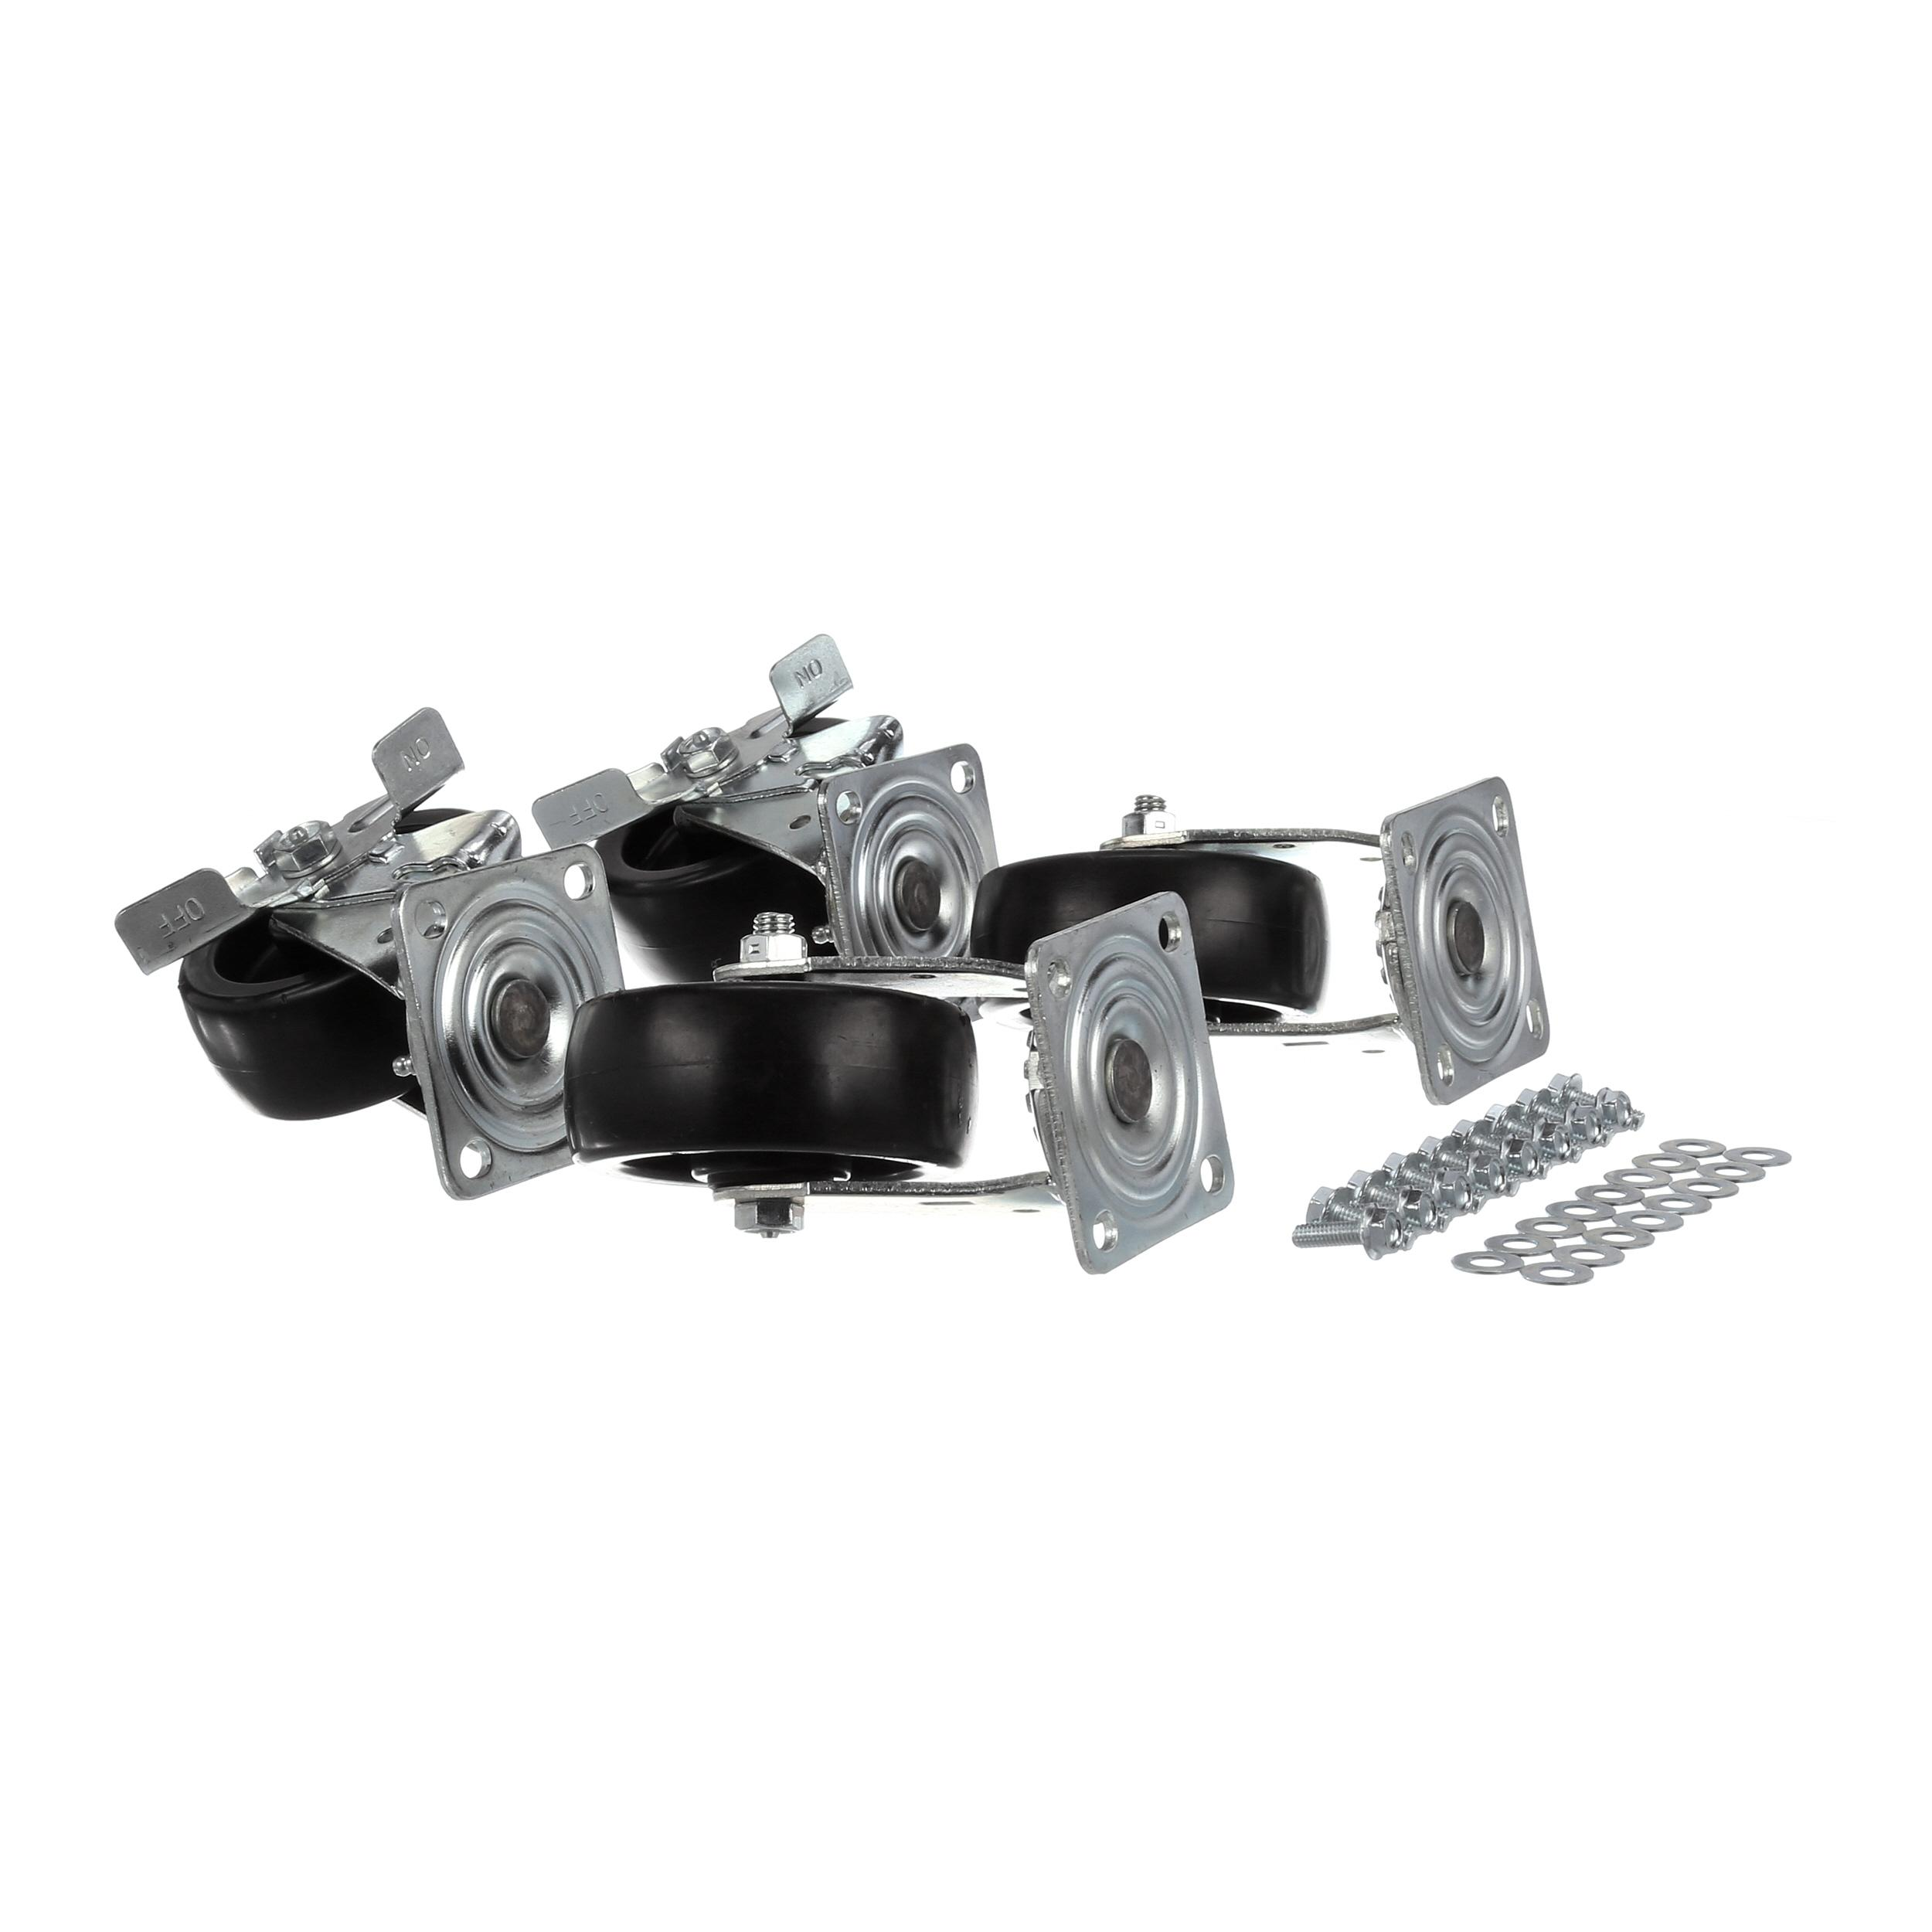 BEVERAGE-AIR PLATE CASTER KIT W/  5 IN WHEEL